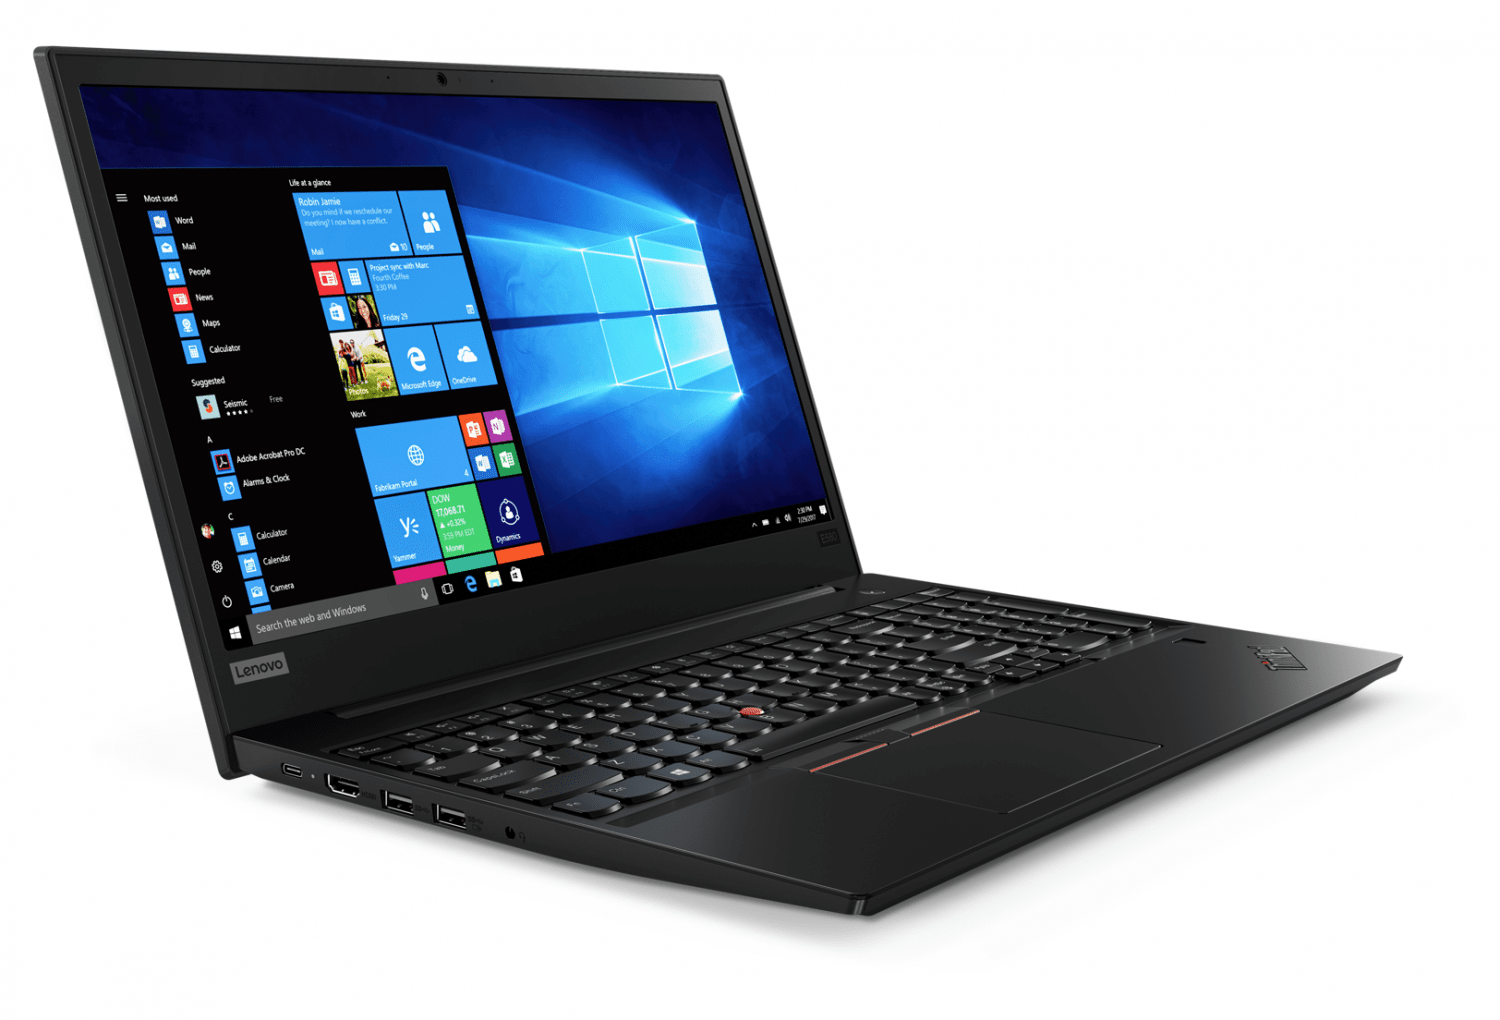 Lenovo ThinkPad Edge E580